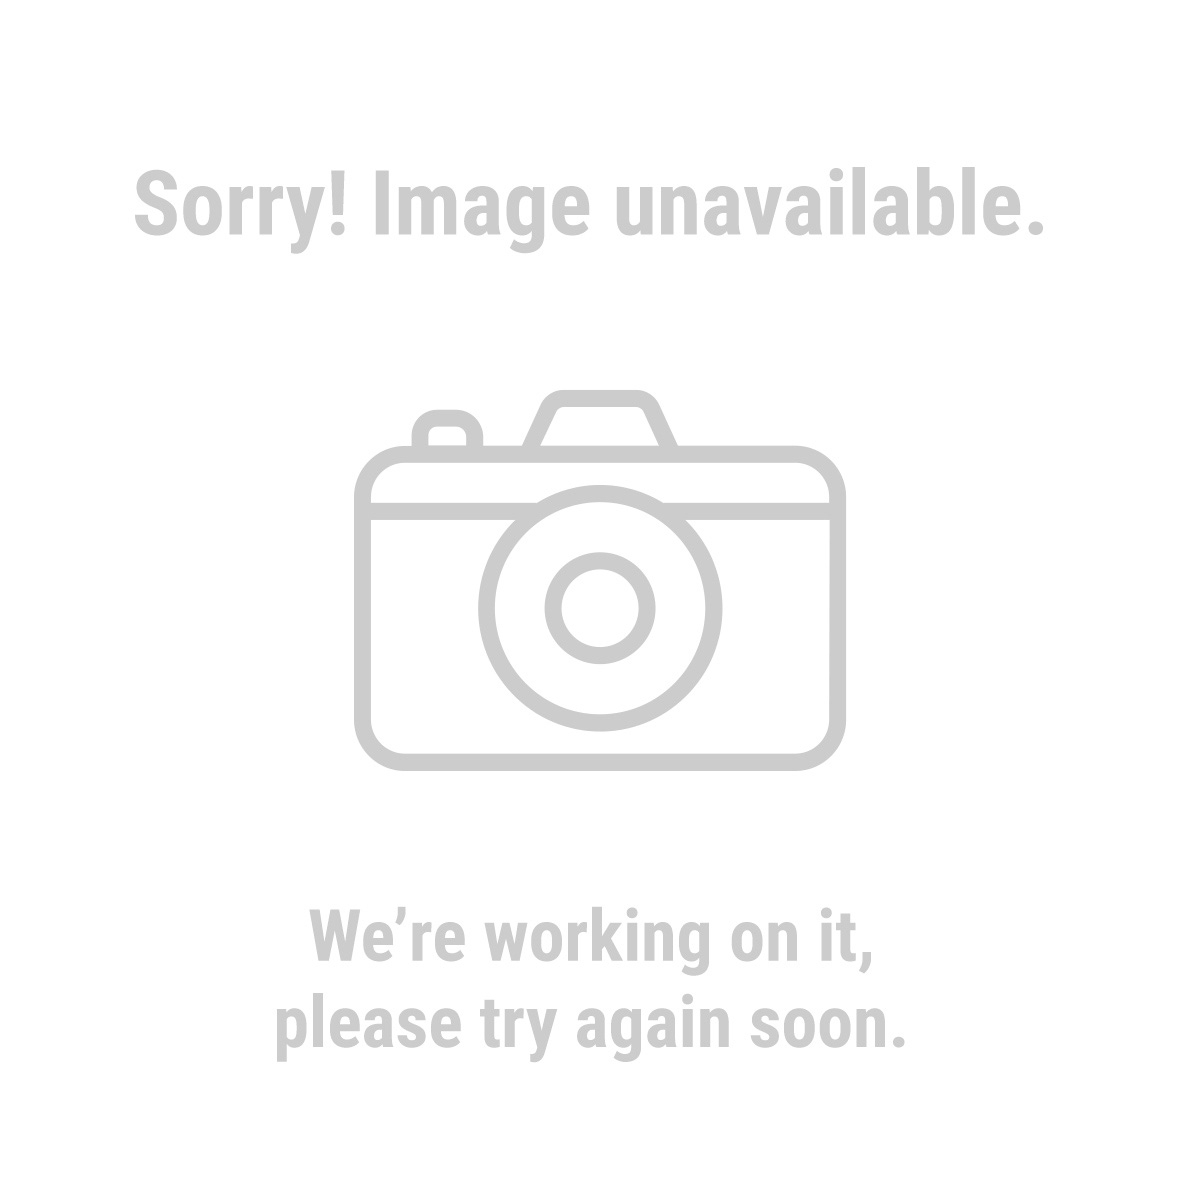 Western Safety 99582 Riding/Stable Work Gloves, X-Large